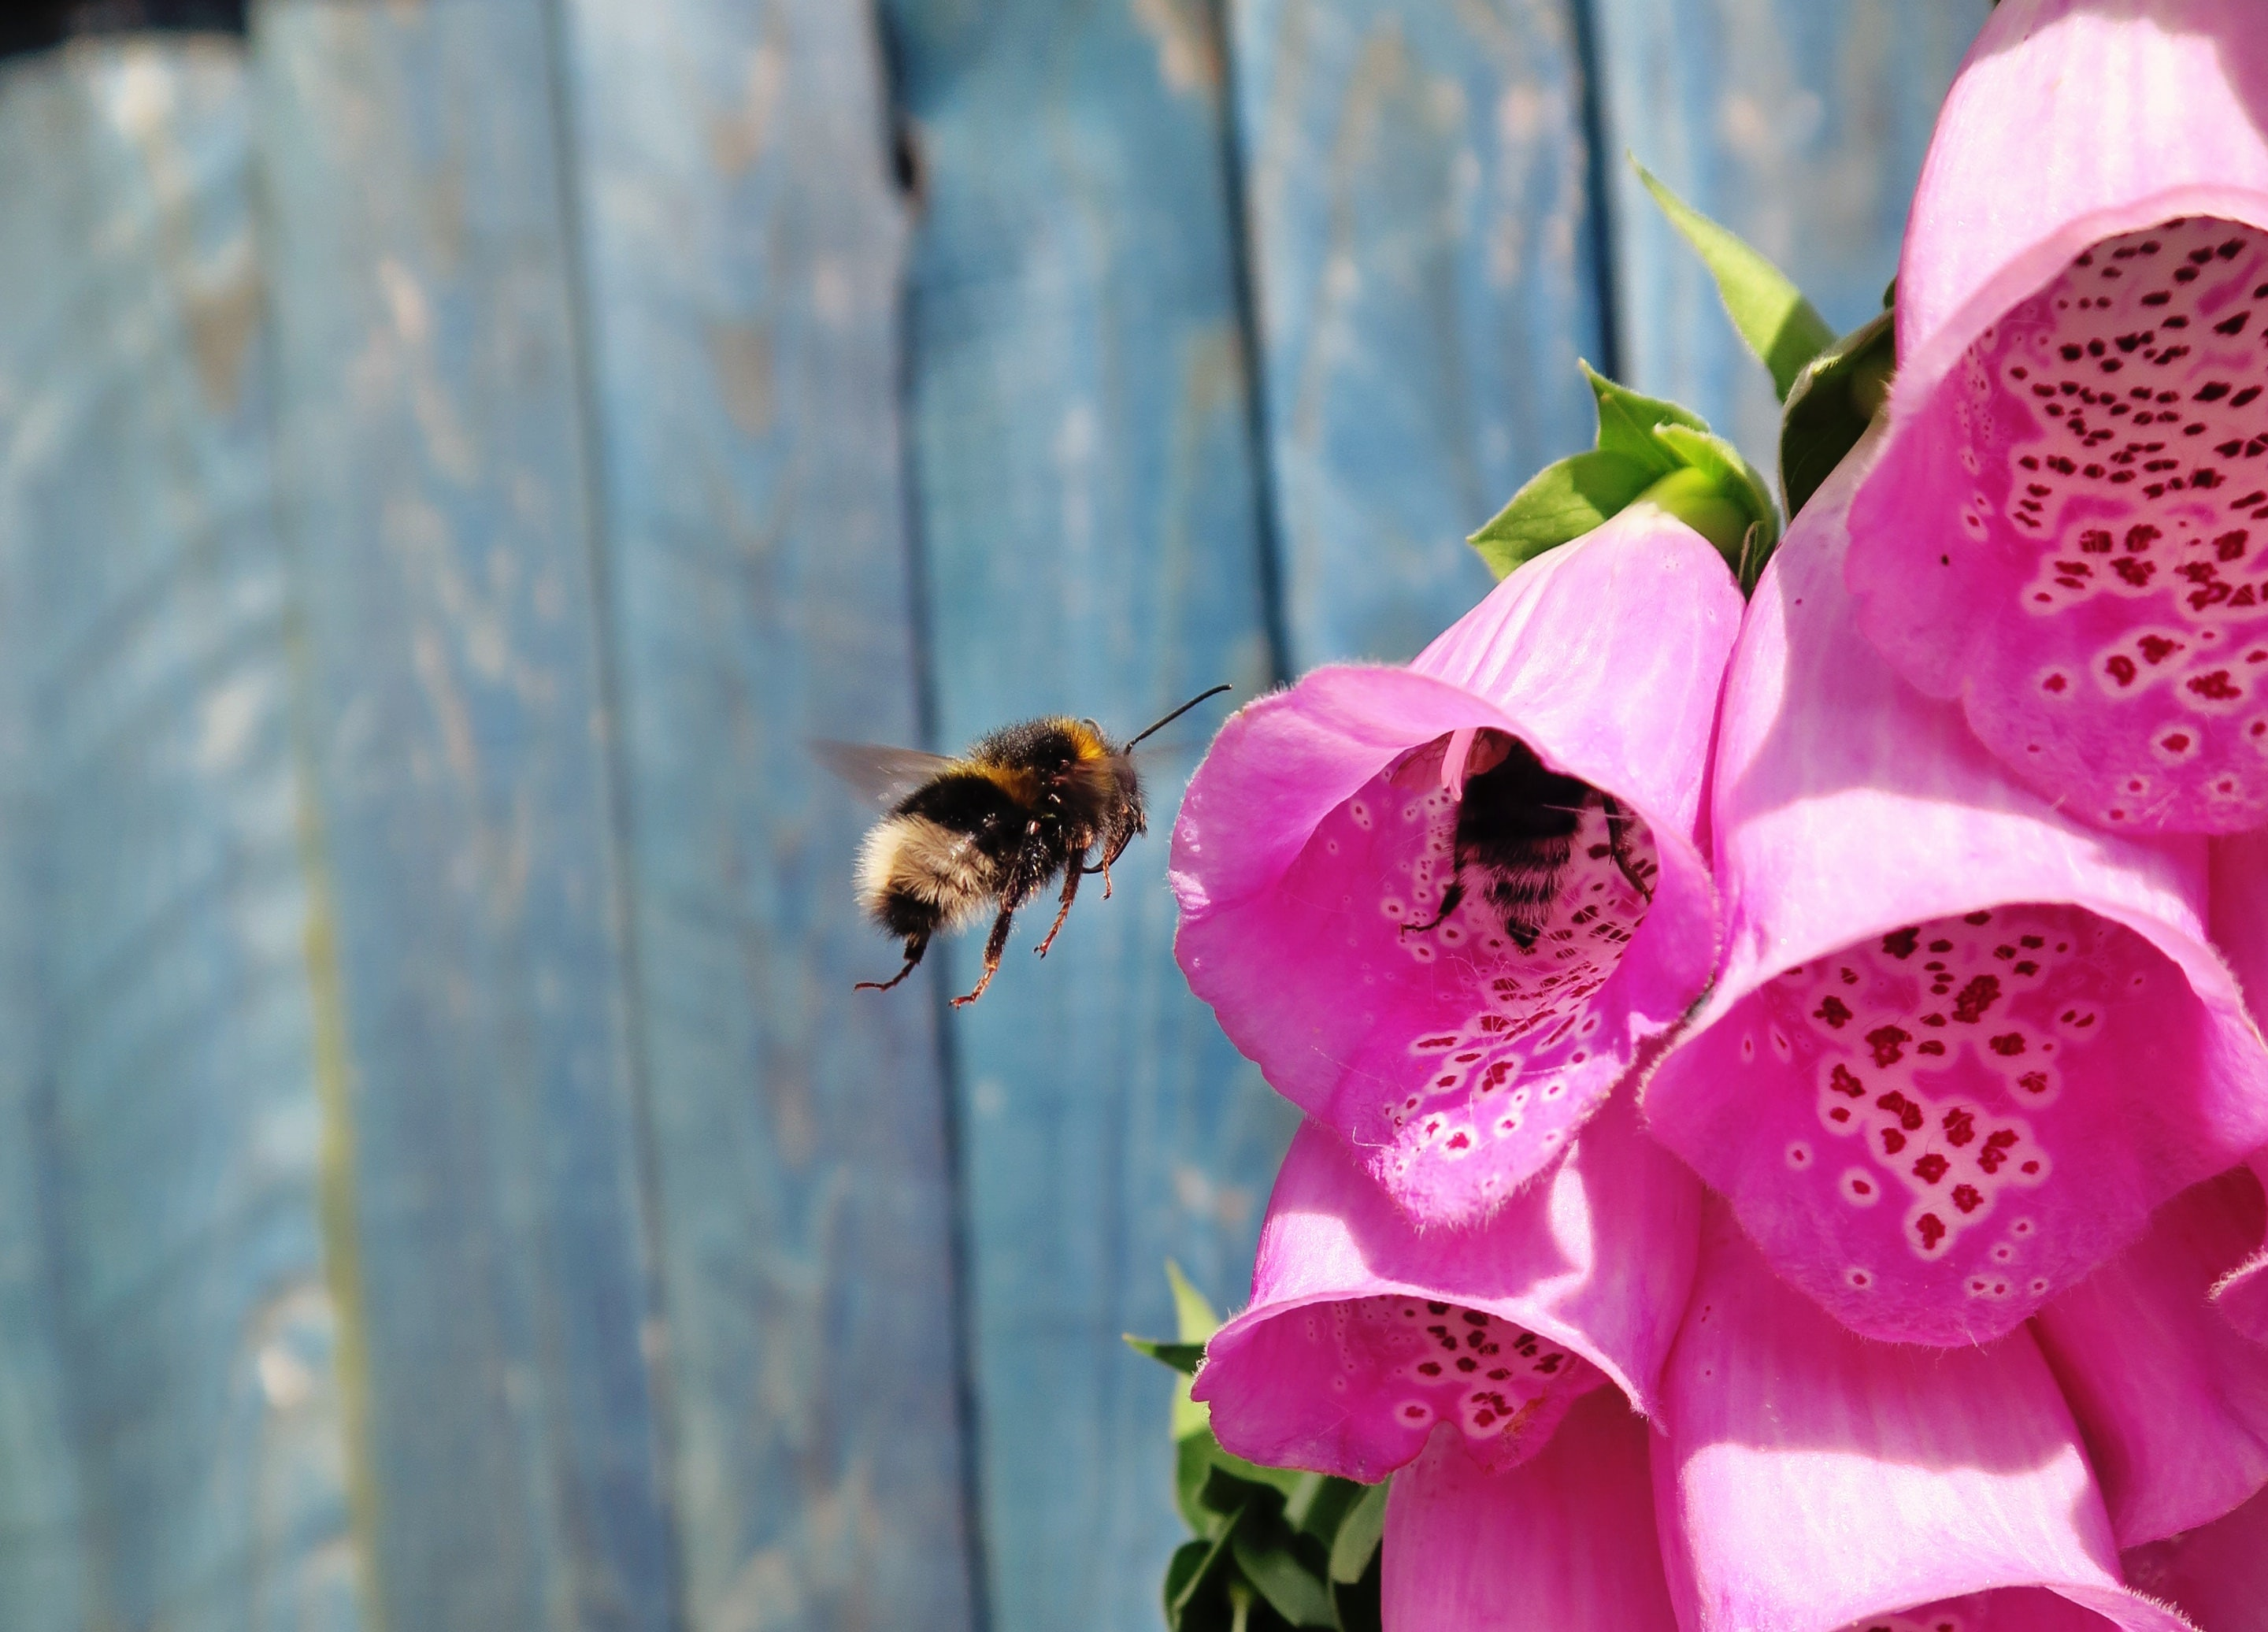 A bee hovering in the air next to pink foxglove flowers